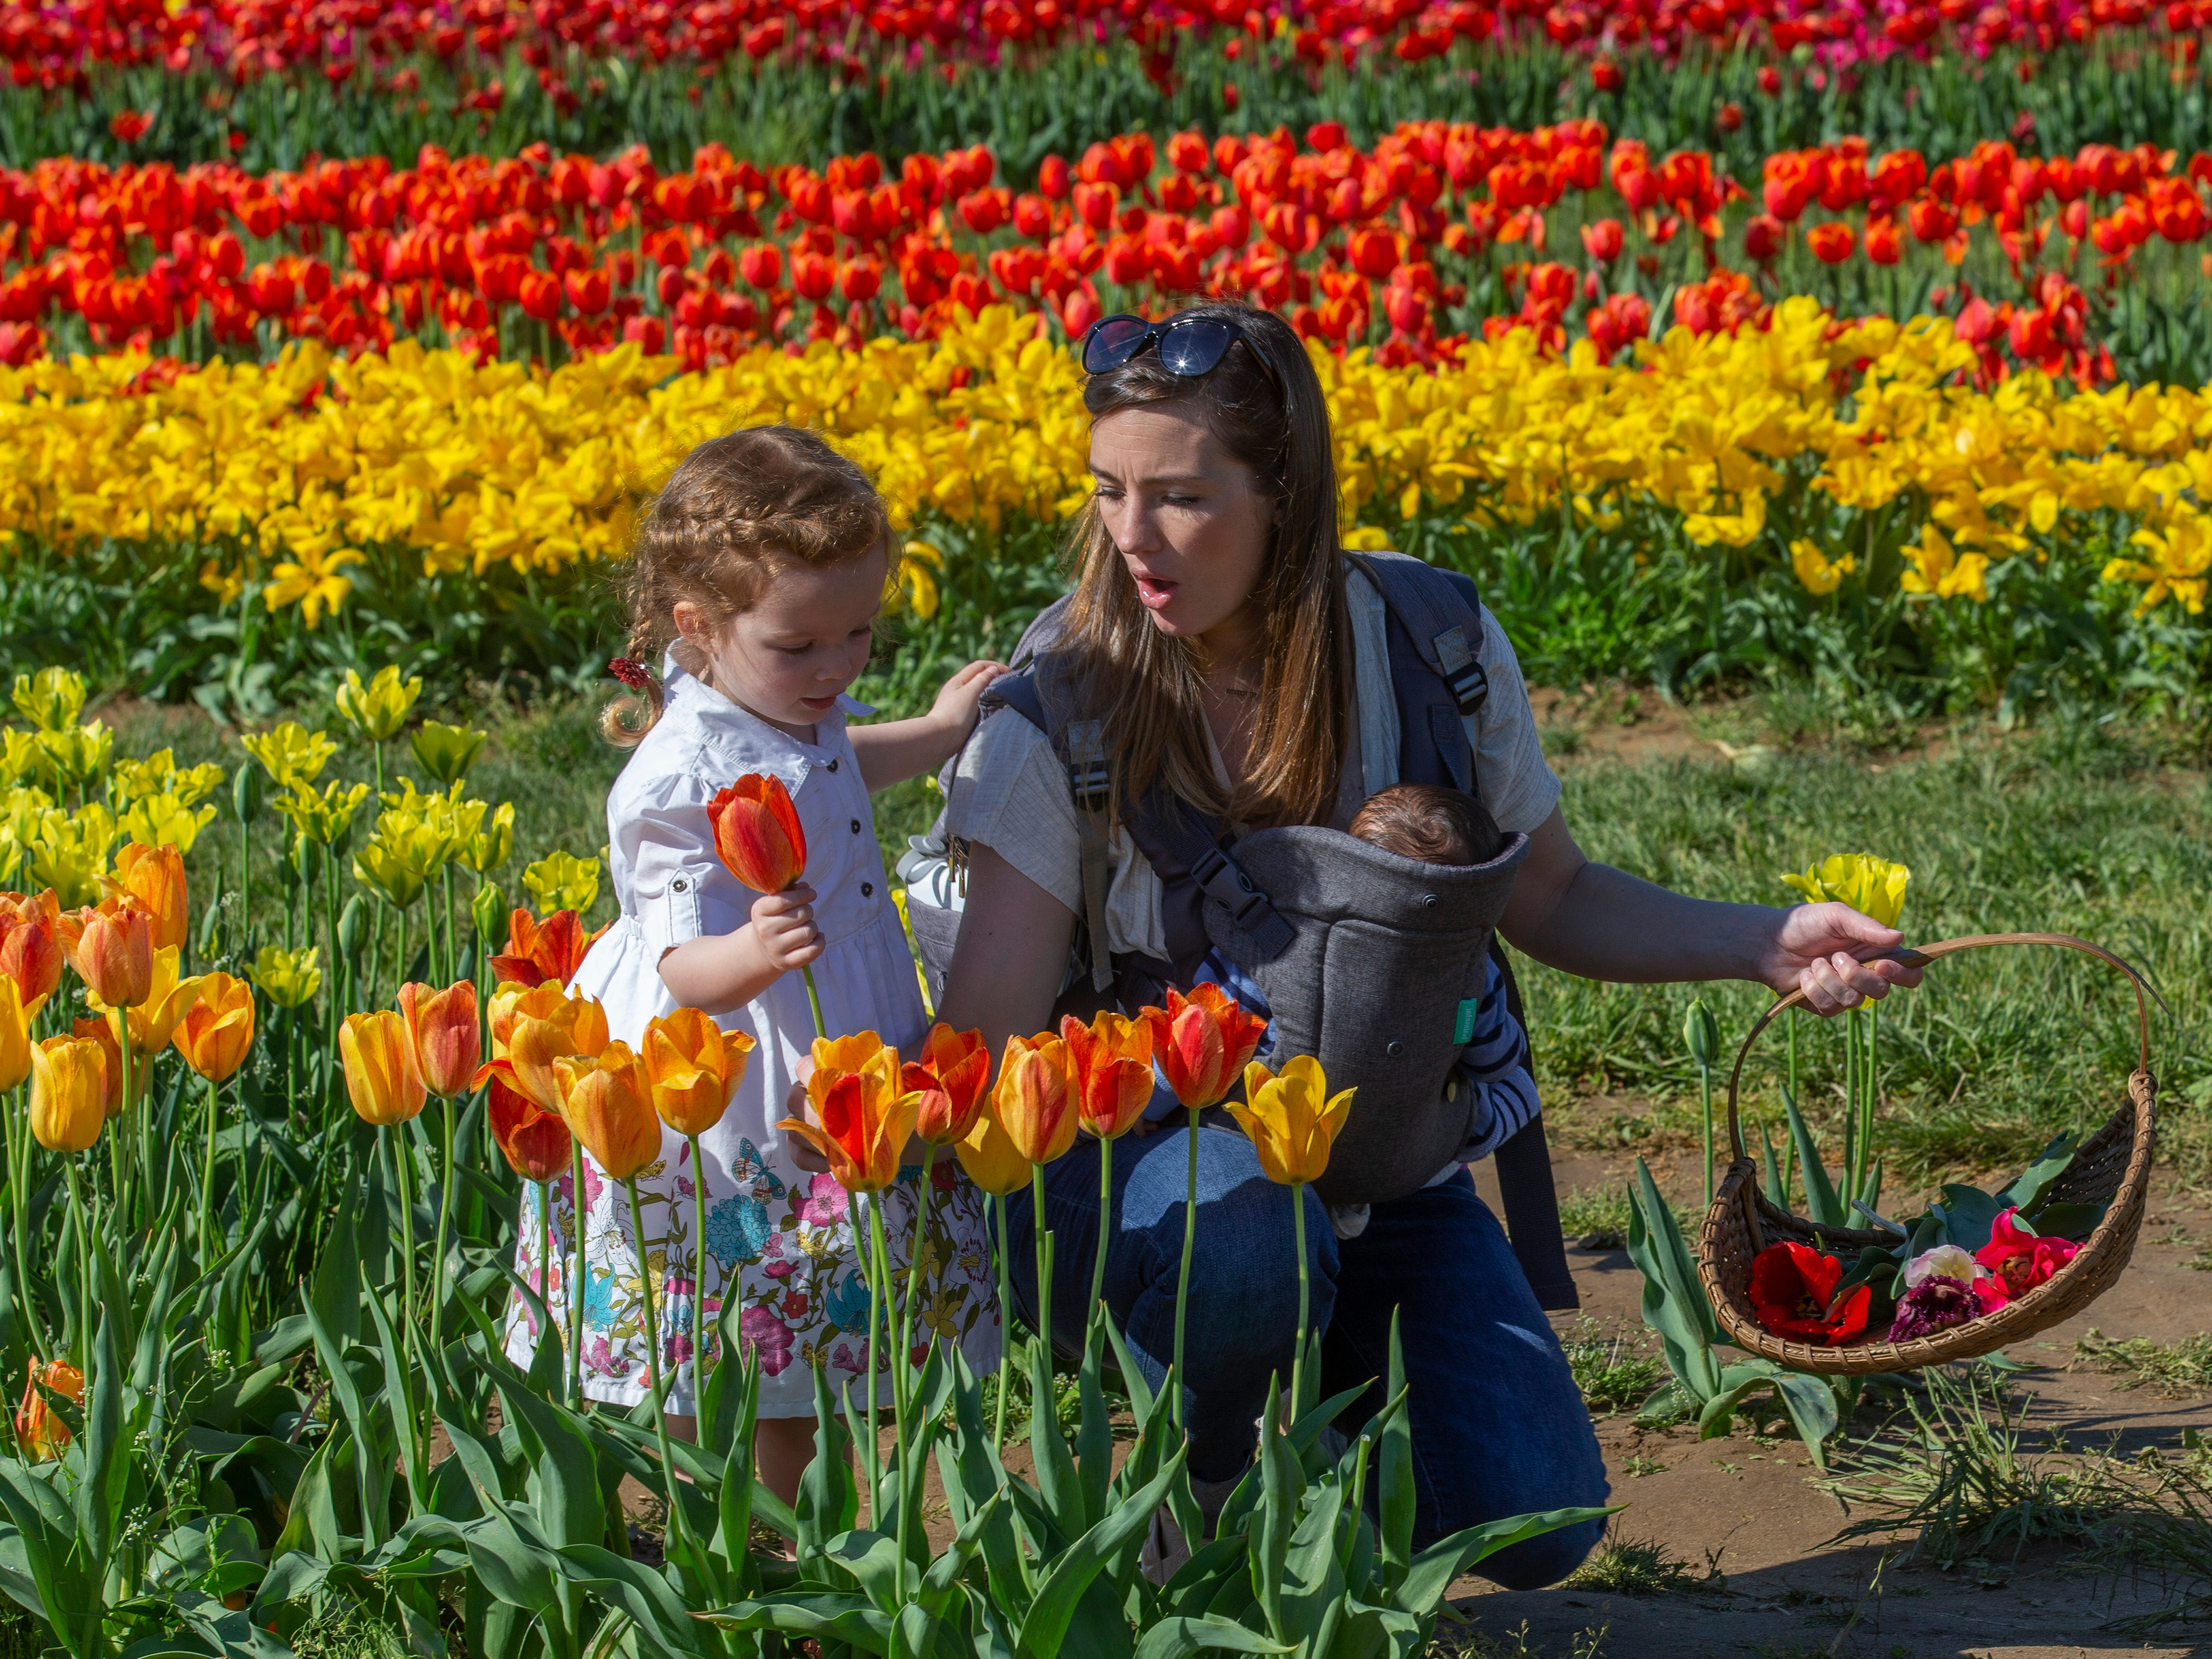 Sadie Decesari, 3, of Tuckerton helps her mom Vanessa picks some flowers at the annual Tulip Festival at Holland Ridge Farms in Cream Ridge Section of Upper Freehold Township. People came from all around to look at the flowers, take pictures of the flowers, and take pictures of themselves with the flowers.